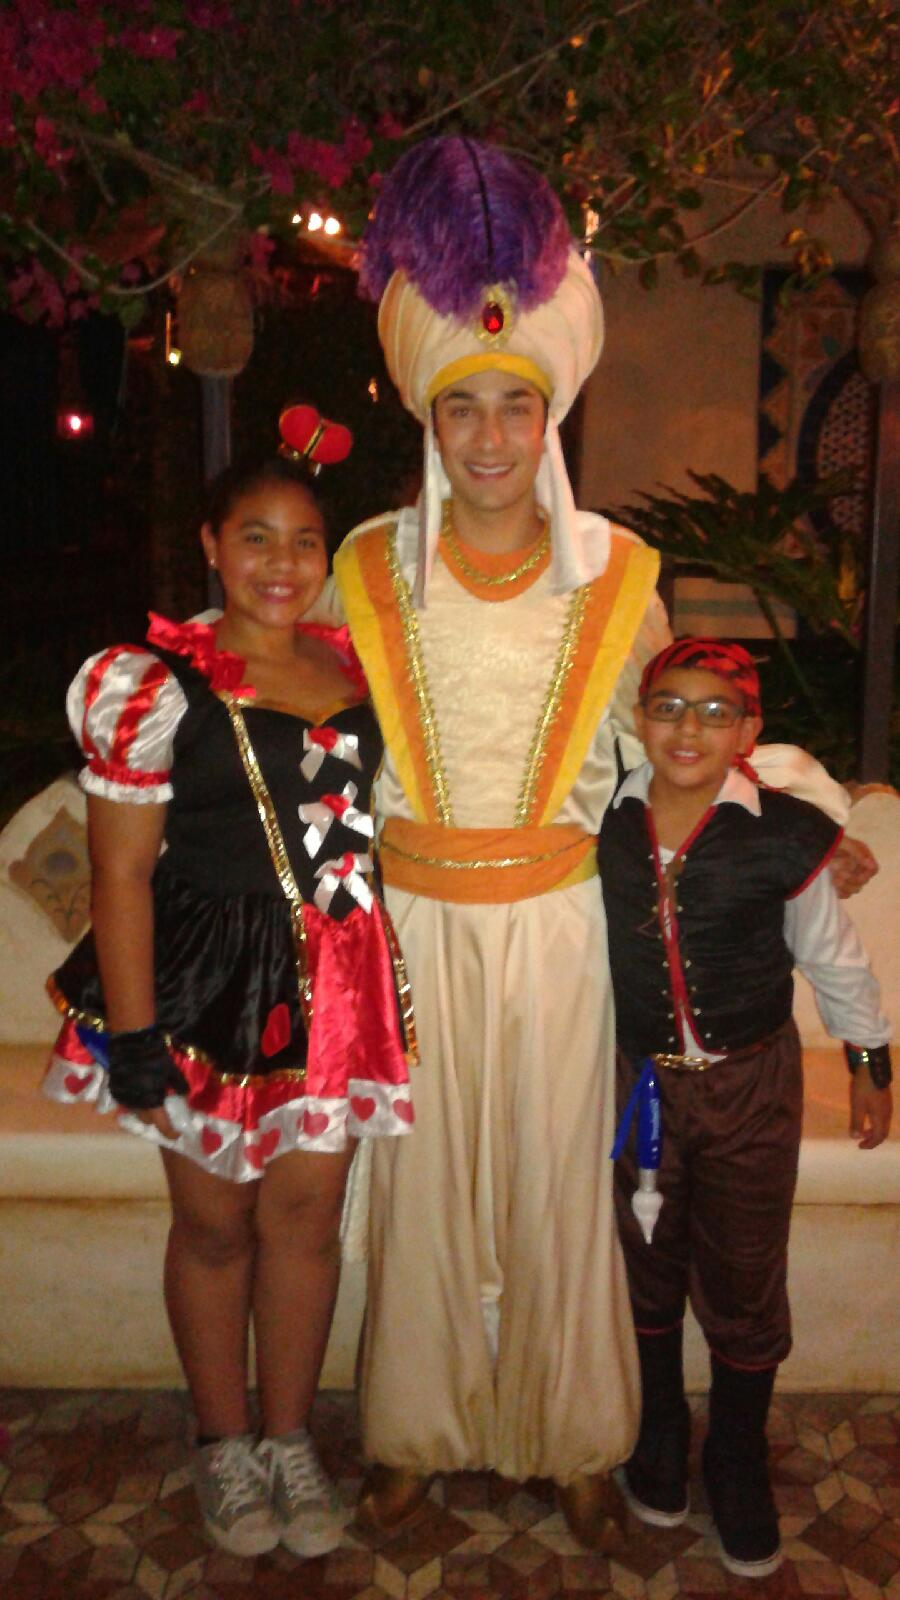 aladdin-mickeys-halloween-party.jpg